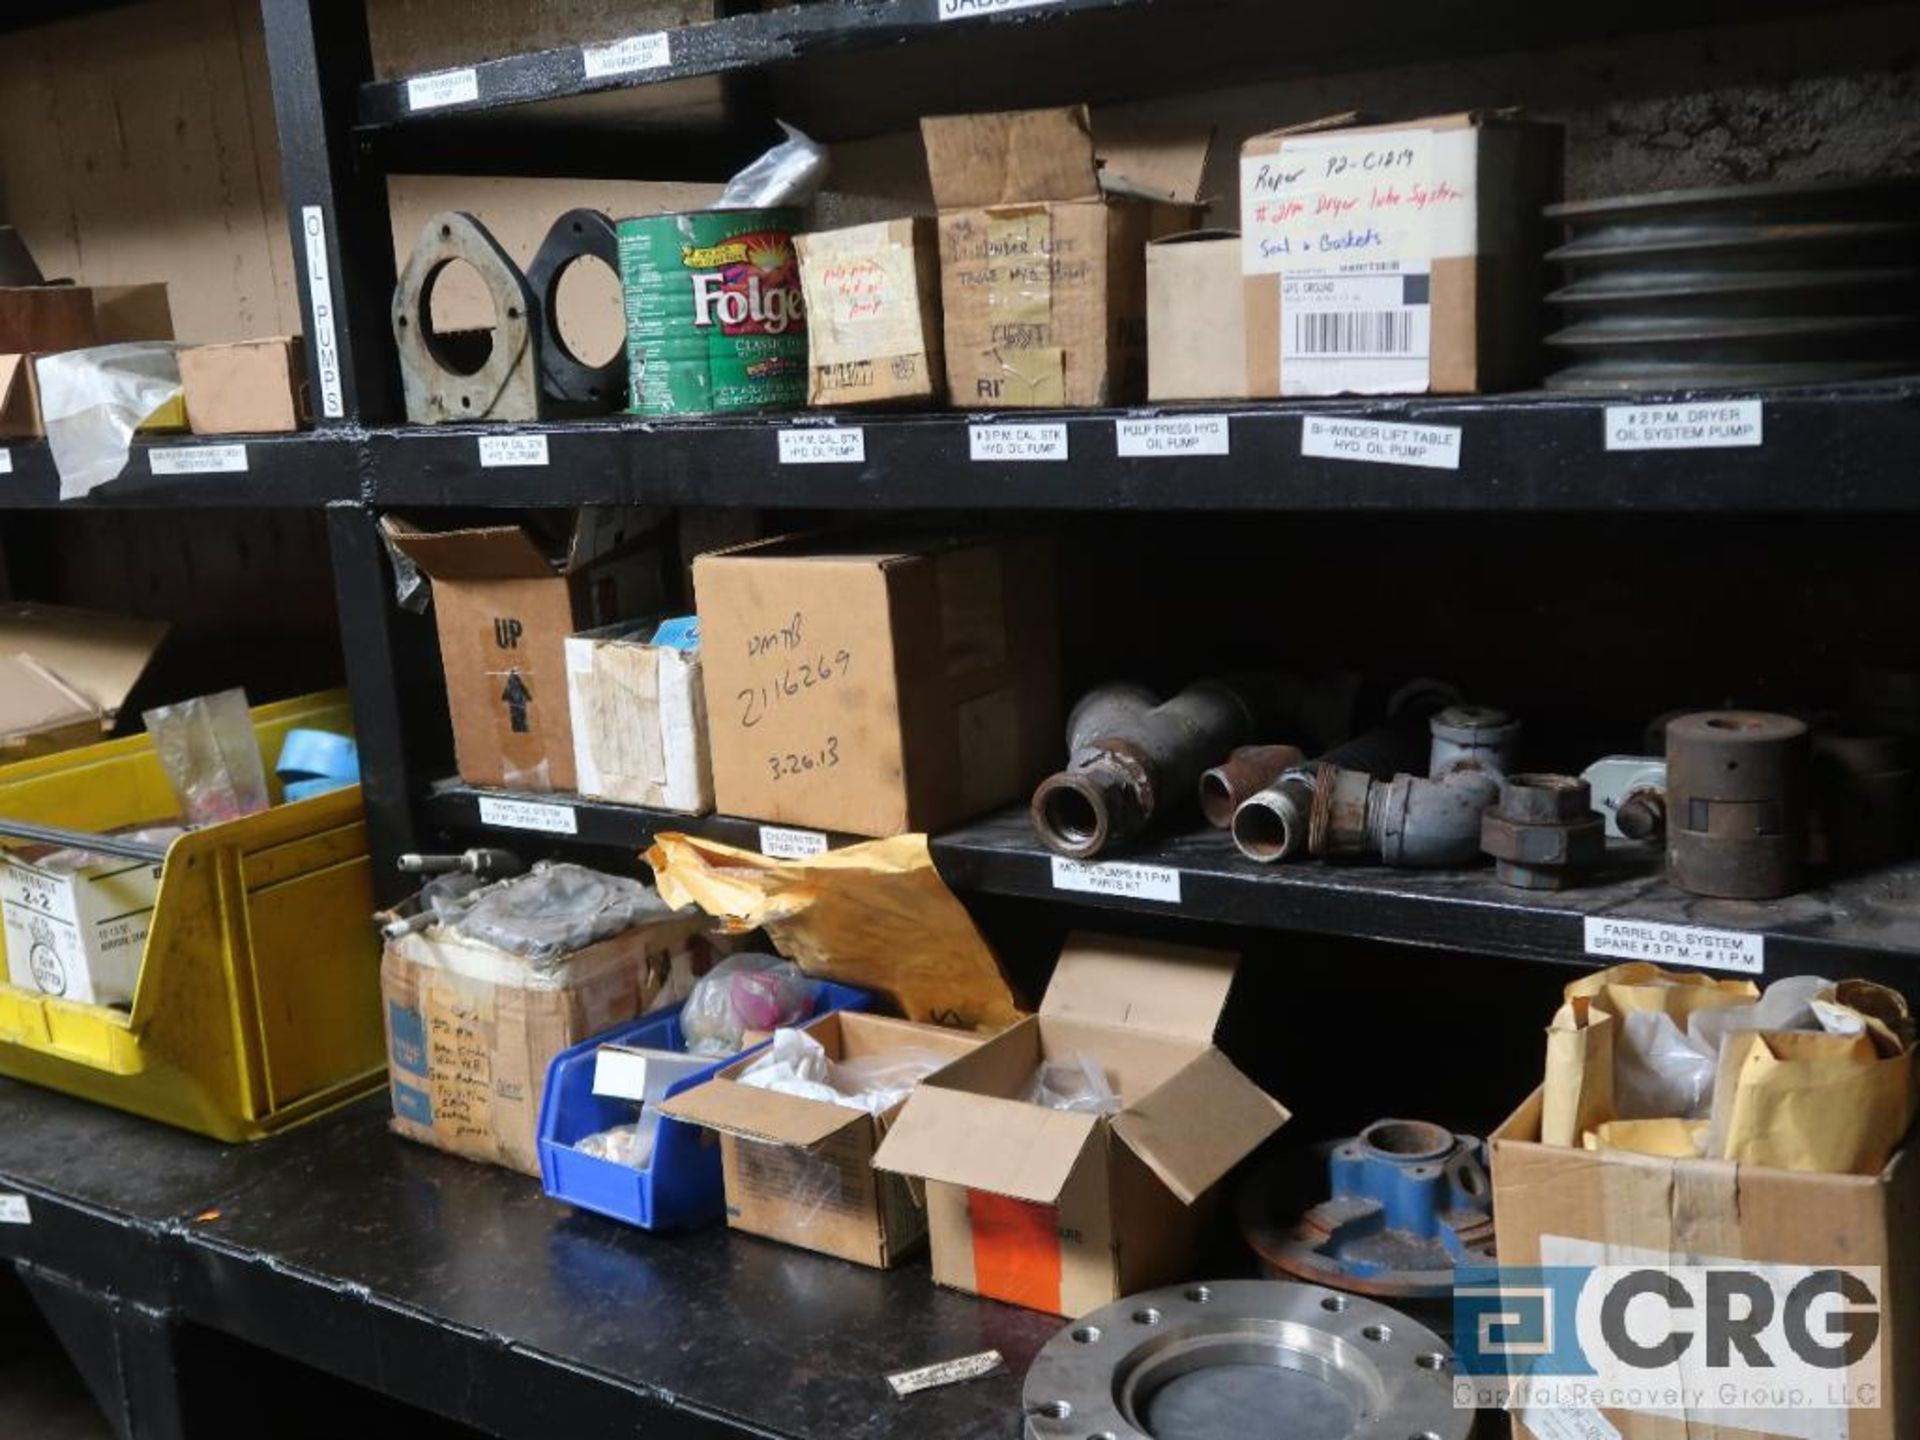 Lot of assorted parts on (4) sections and on wood shelving including motor, guards, housing, pump - Image 12 of 20